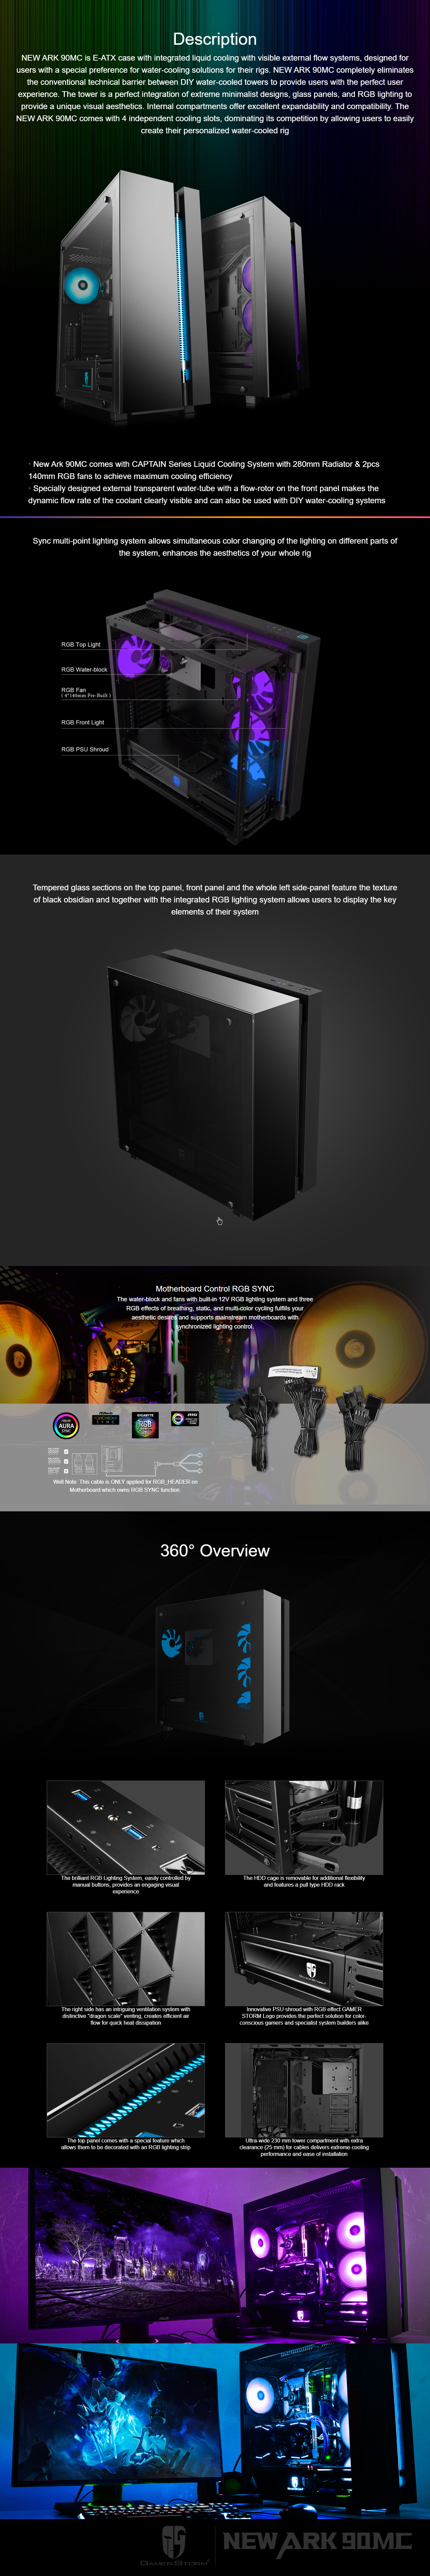 A large marketing image providing additional information about the product Deepcool ARK 90MC RGB Full Tower Case w/ AIO Liquid CPU Cooler - Additional alt info not provided